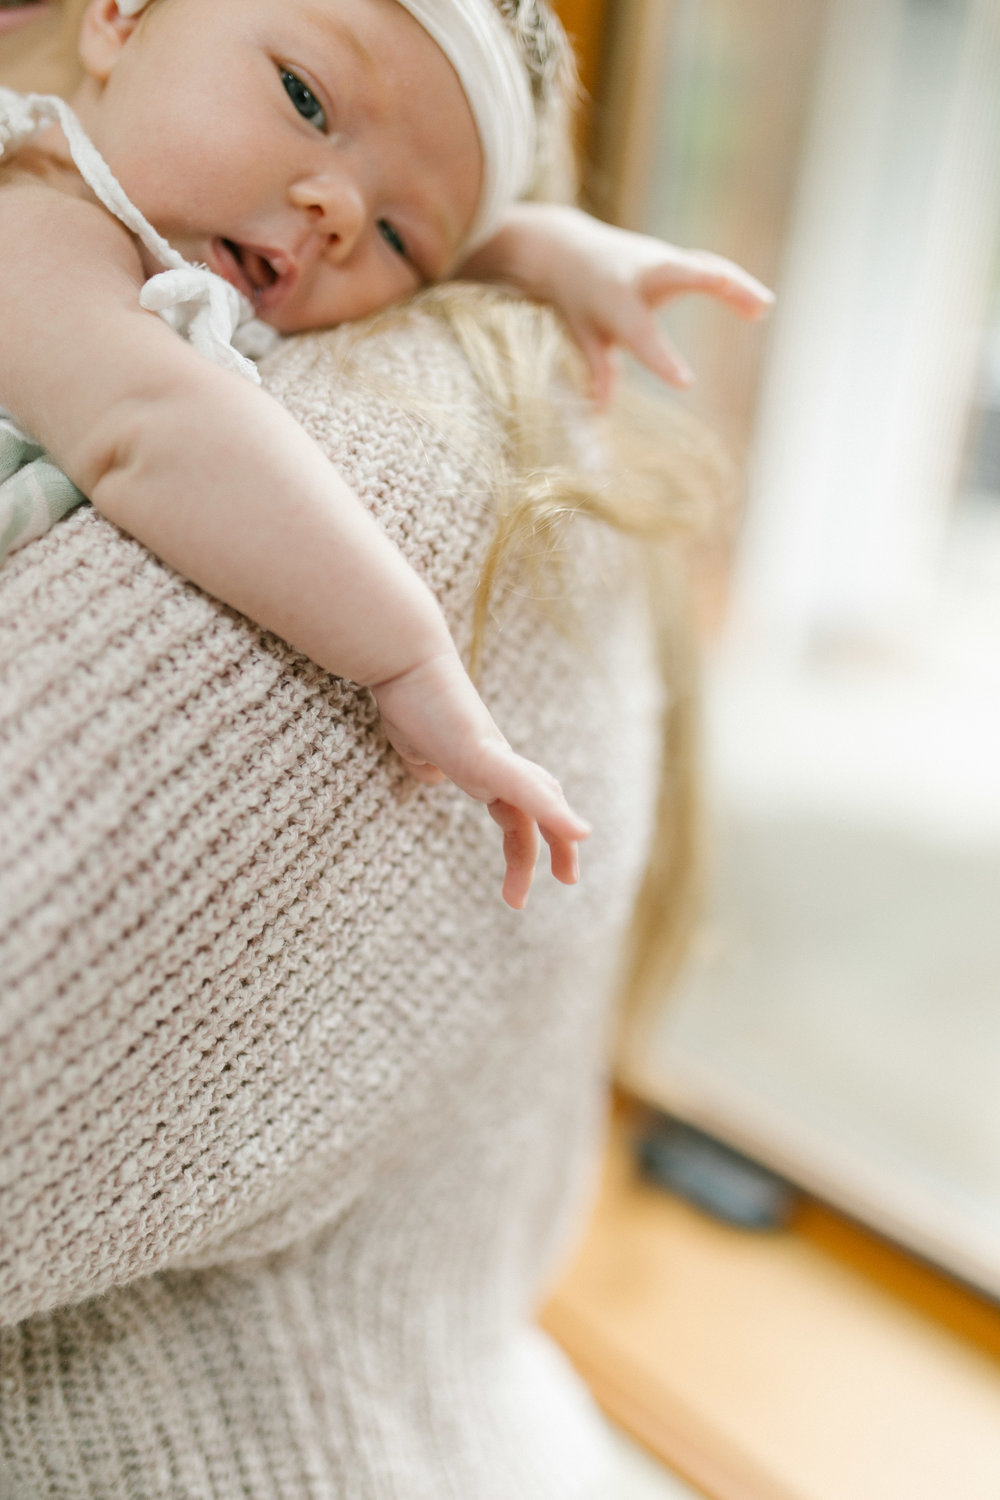 At Home Lifestyle Newborn And Family Photos | Chelsea Macor Photography-37.jpg